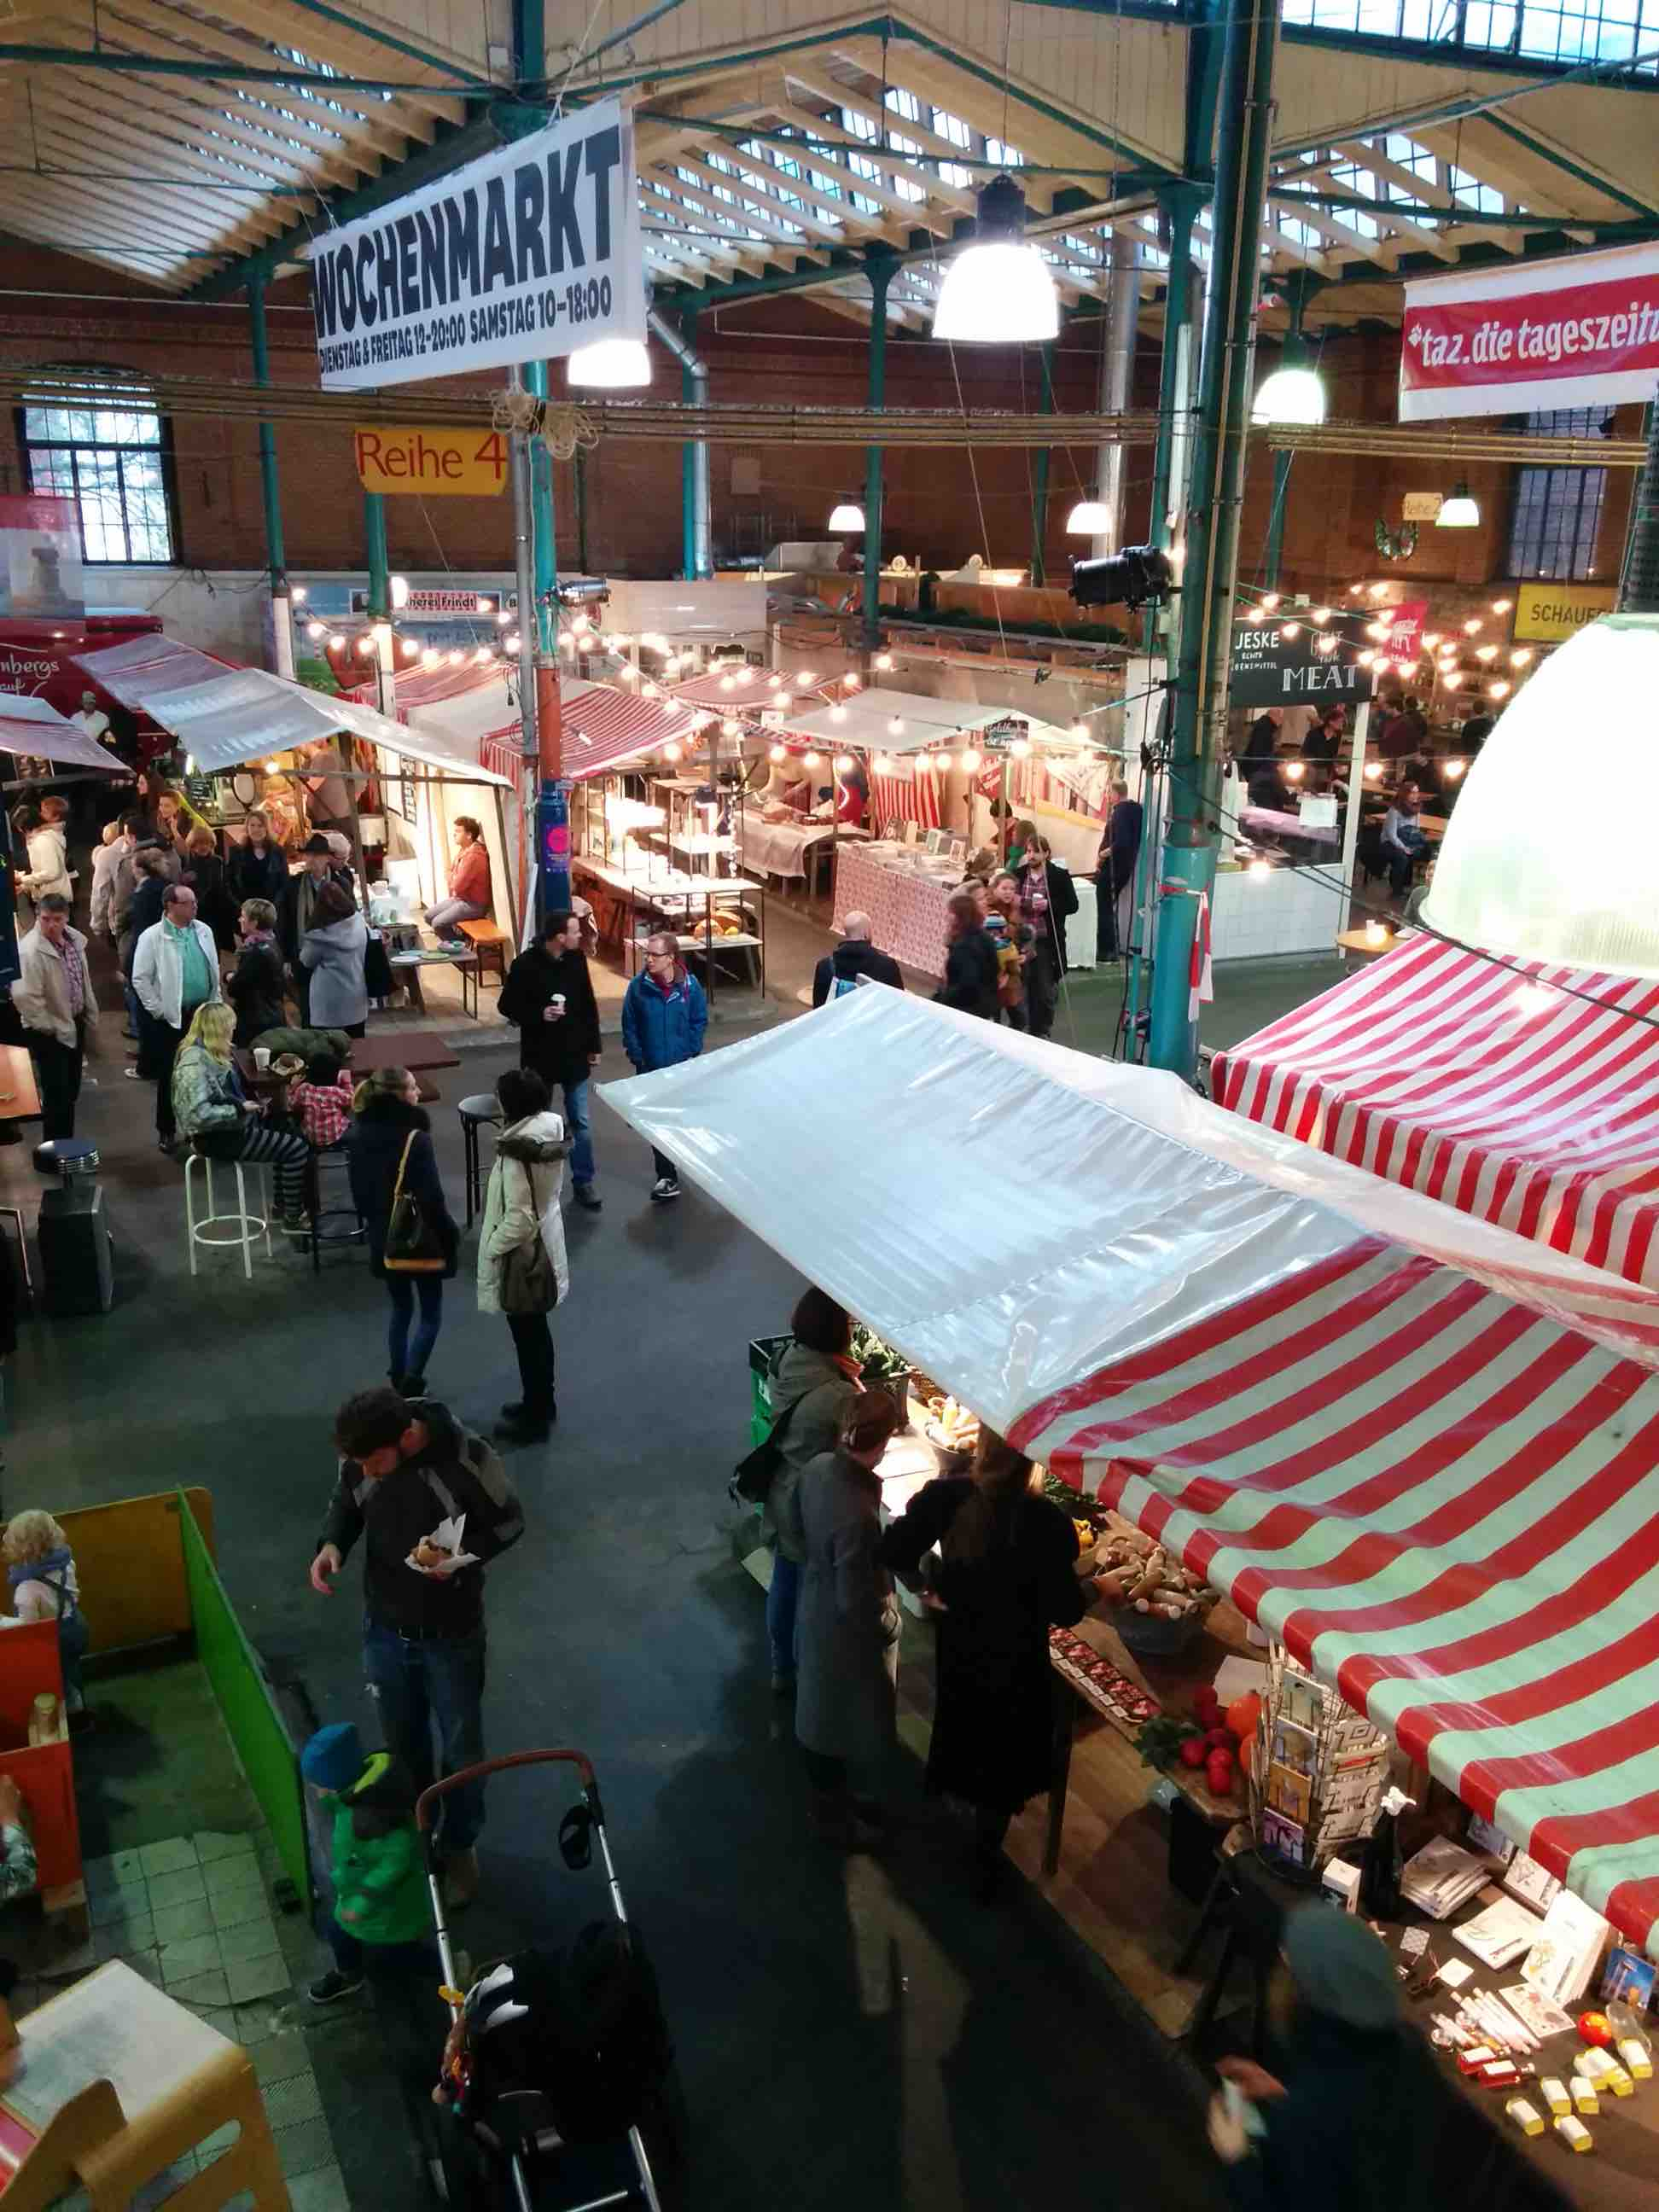 Berlin 39 s best street food markets berlin food stories for Bar food night neue heimat